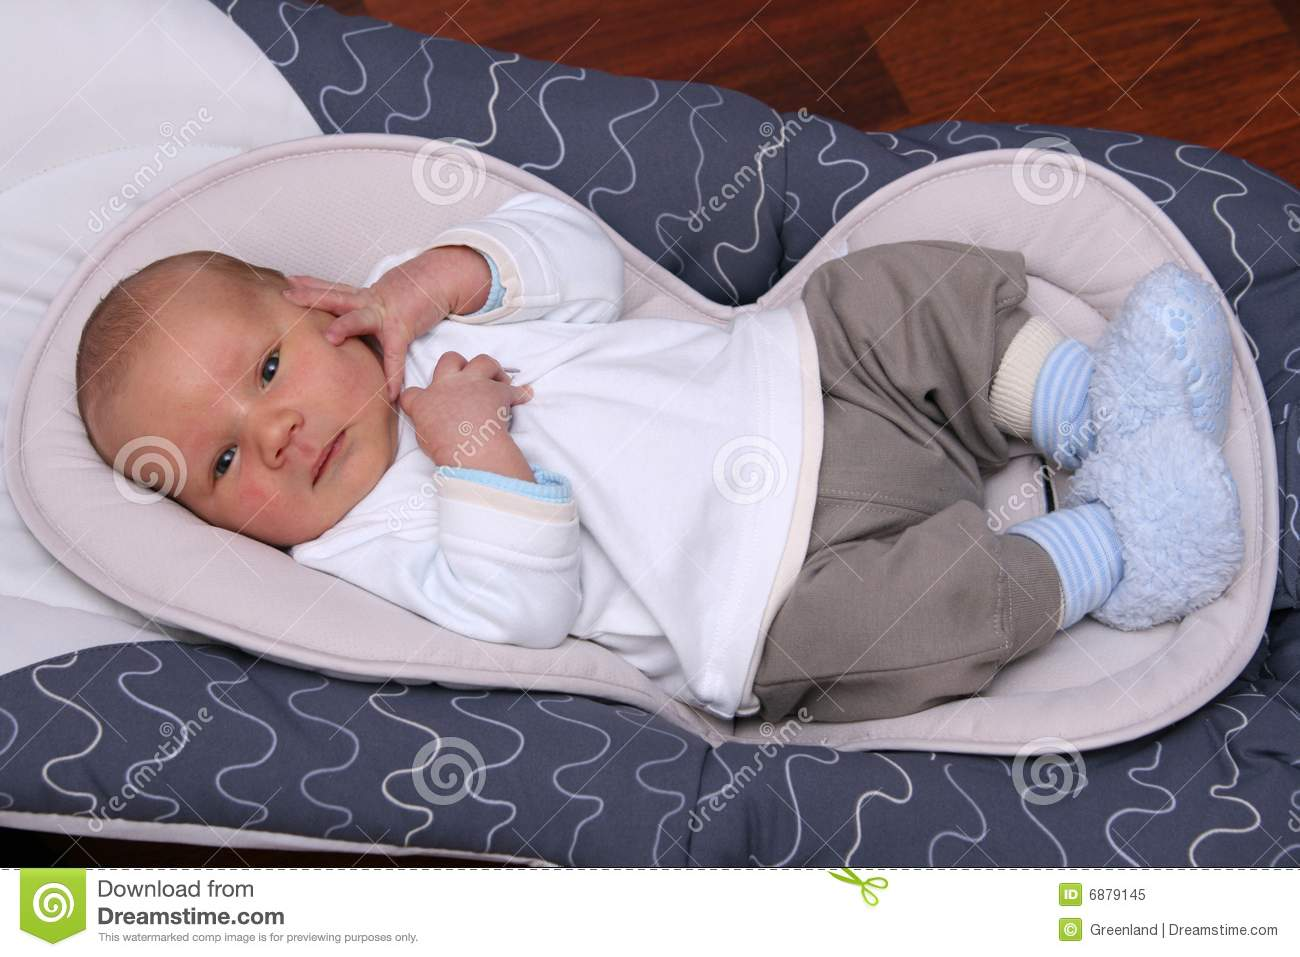 d568f18e80f1 Newborn Baby Lying In Bouncer Chair Stock Image - Image of babygear ...